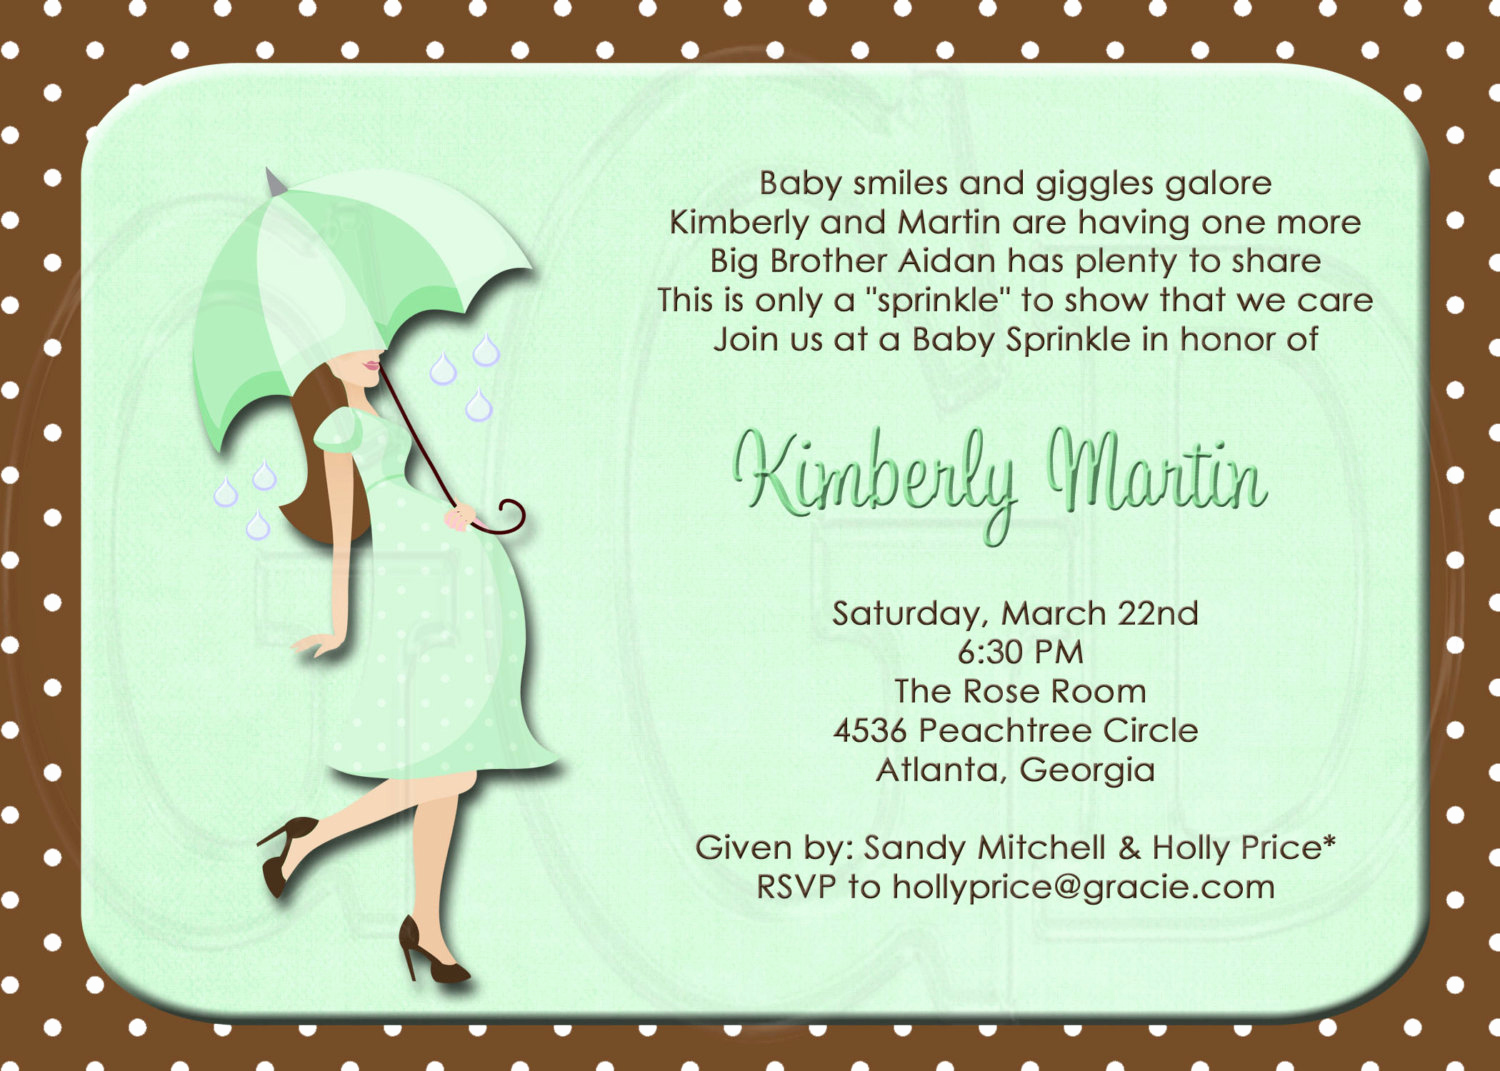 Baby Shower Invitation Example Unique Silhouette Baby Shower or Sprinkle for 2nd or 3rd Child